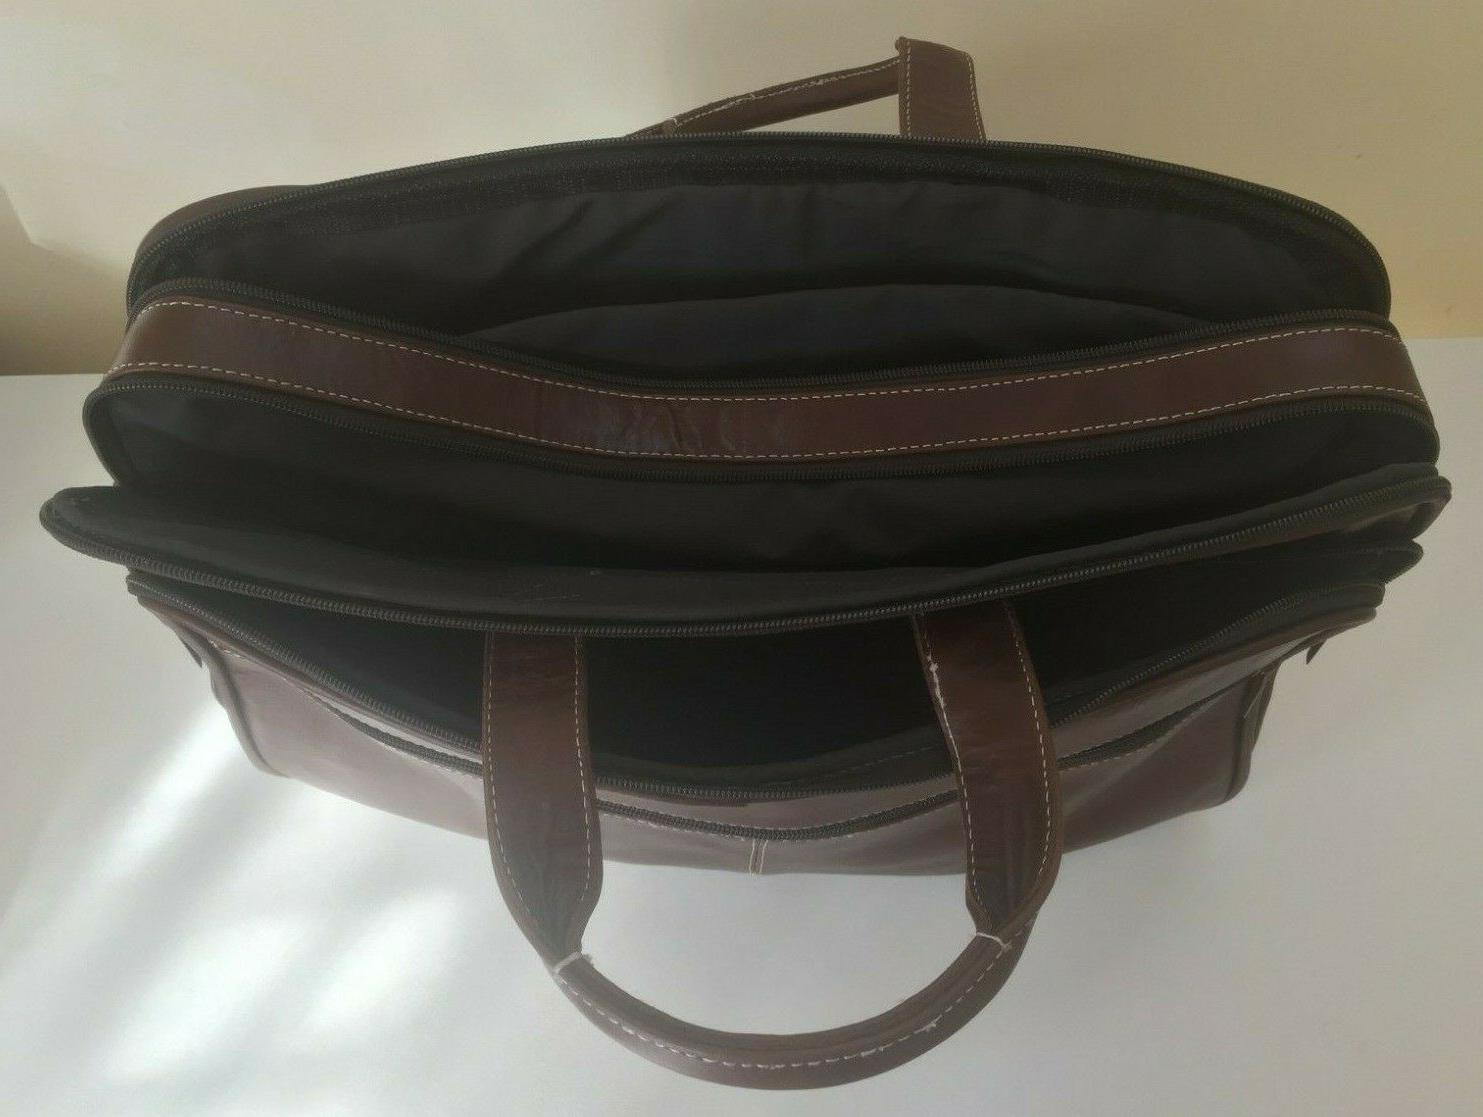 Men's Leather Laptop Luggage Messenger